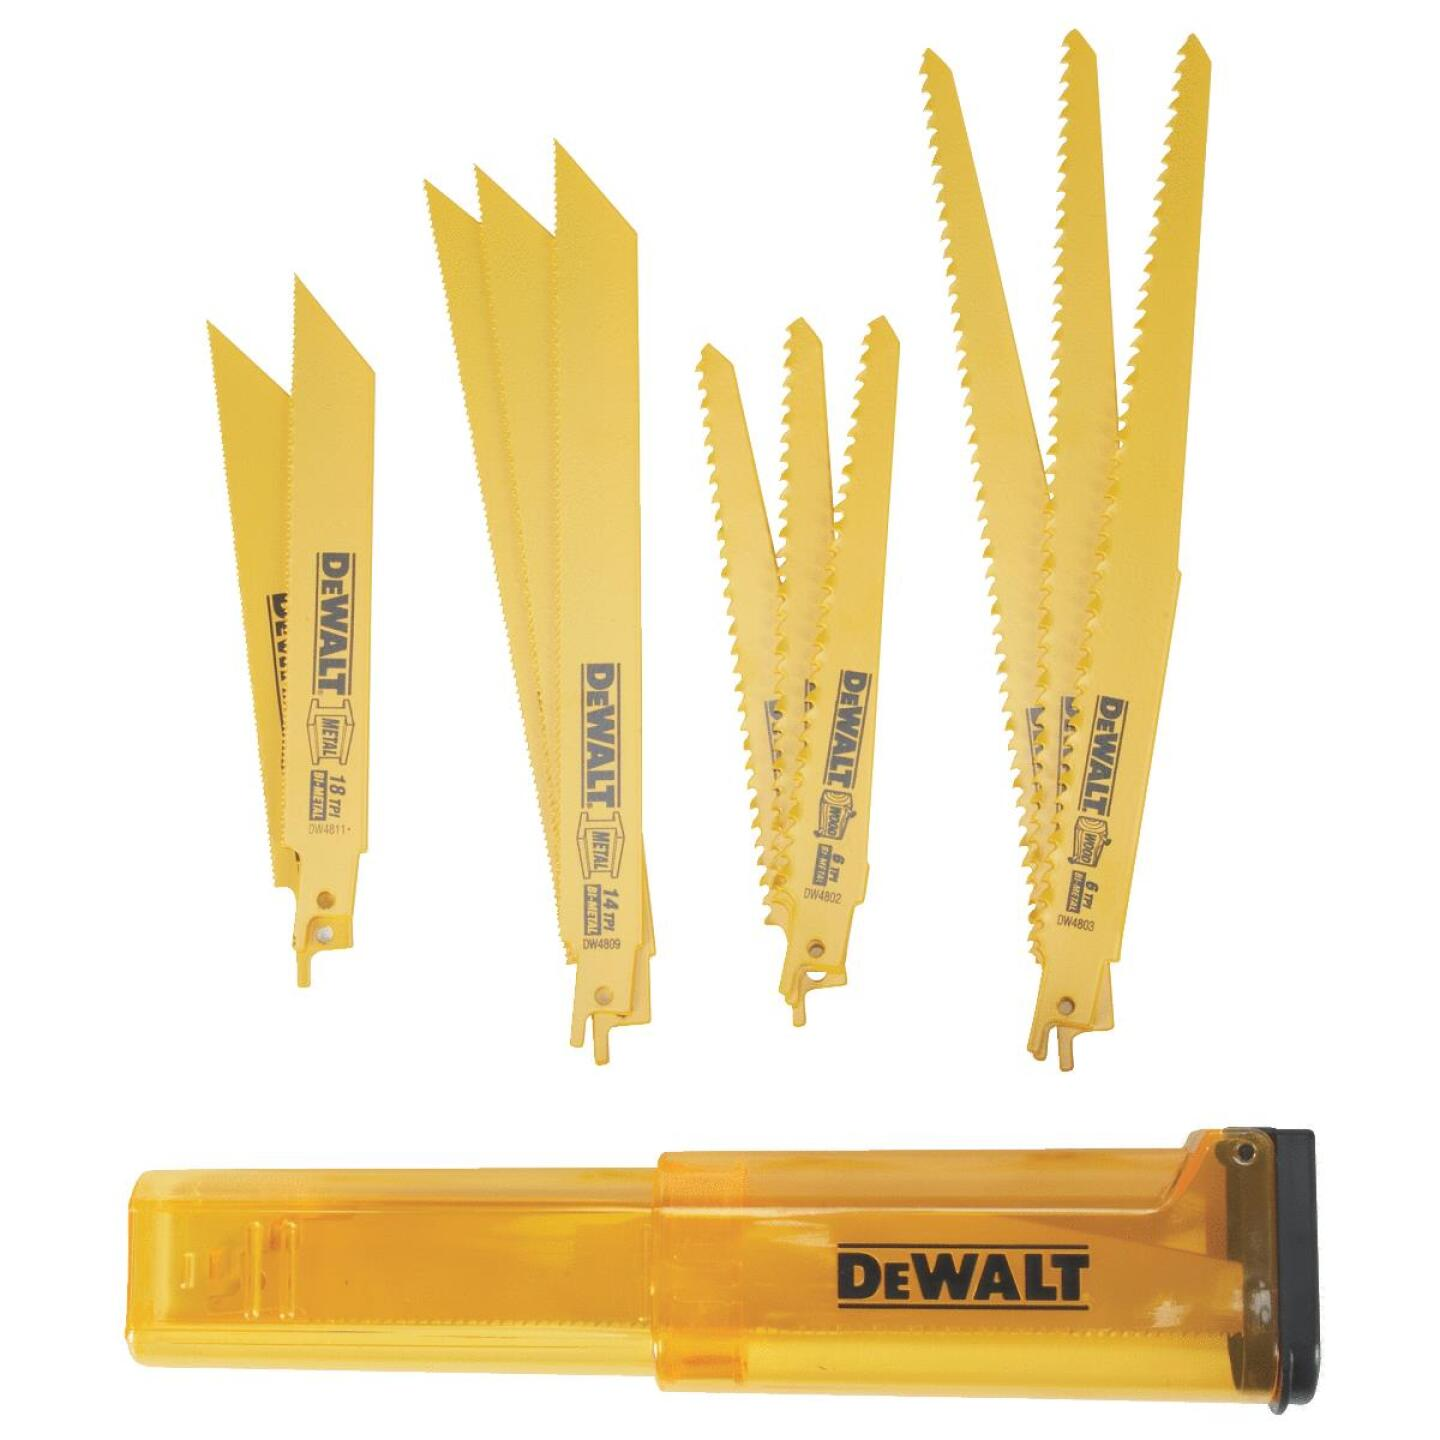 DeWalt 12-Piece Reciprocating Saw Blade Set Image 2